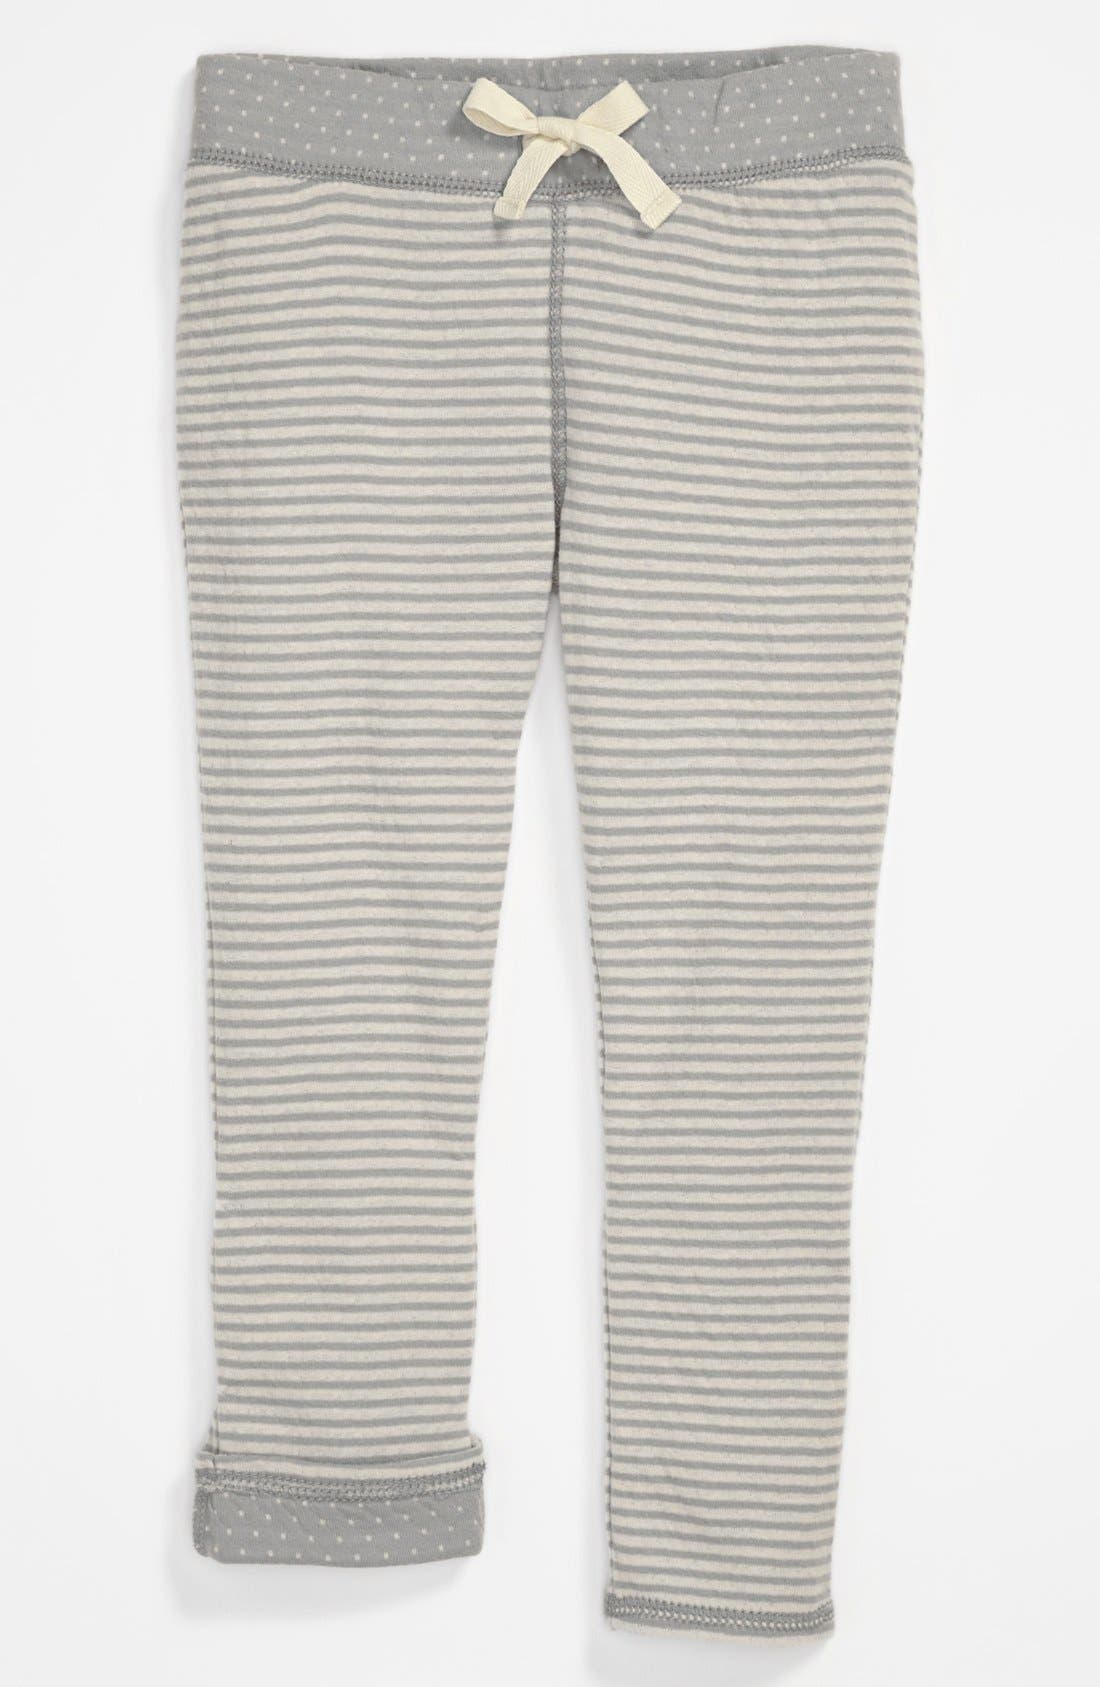 Alternate Image 1 Selected - Tucker + Tate 'Leah' Leggings (Toddler Girls)